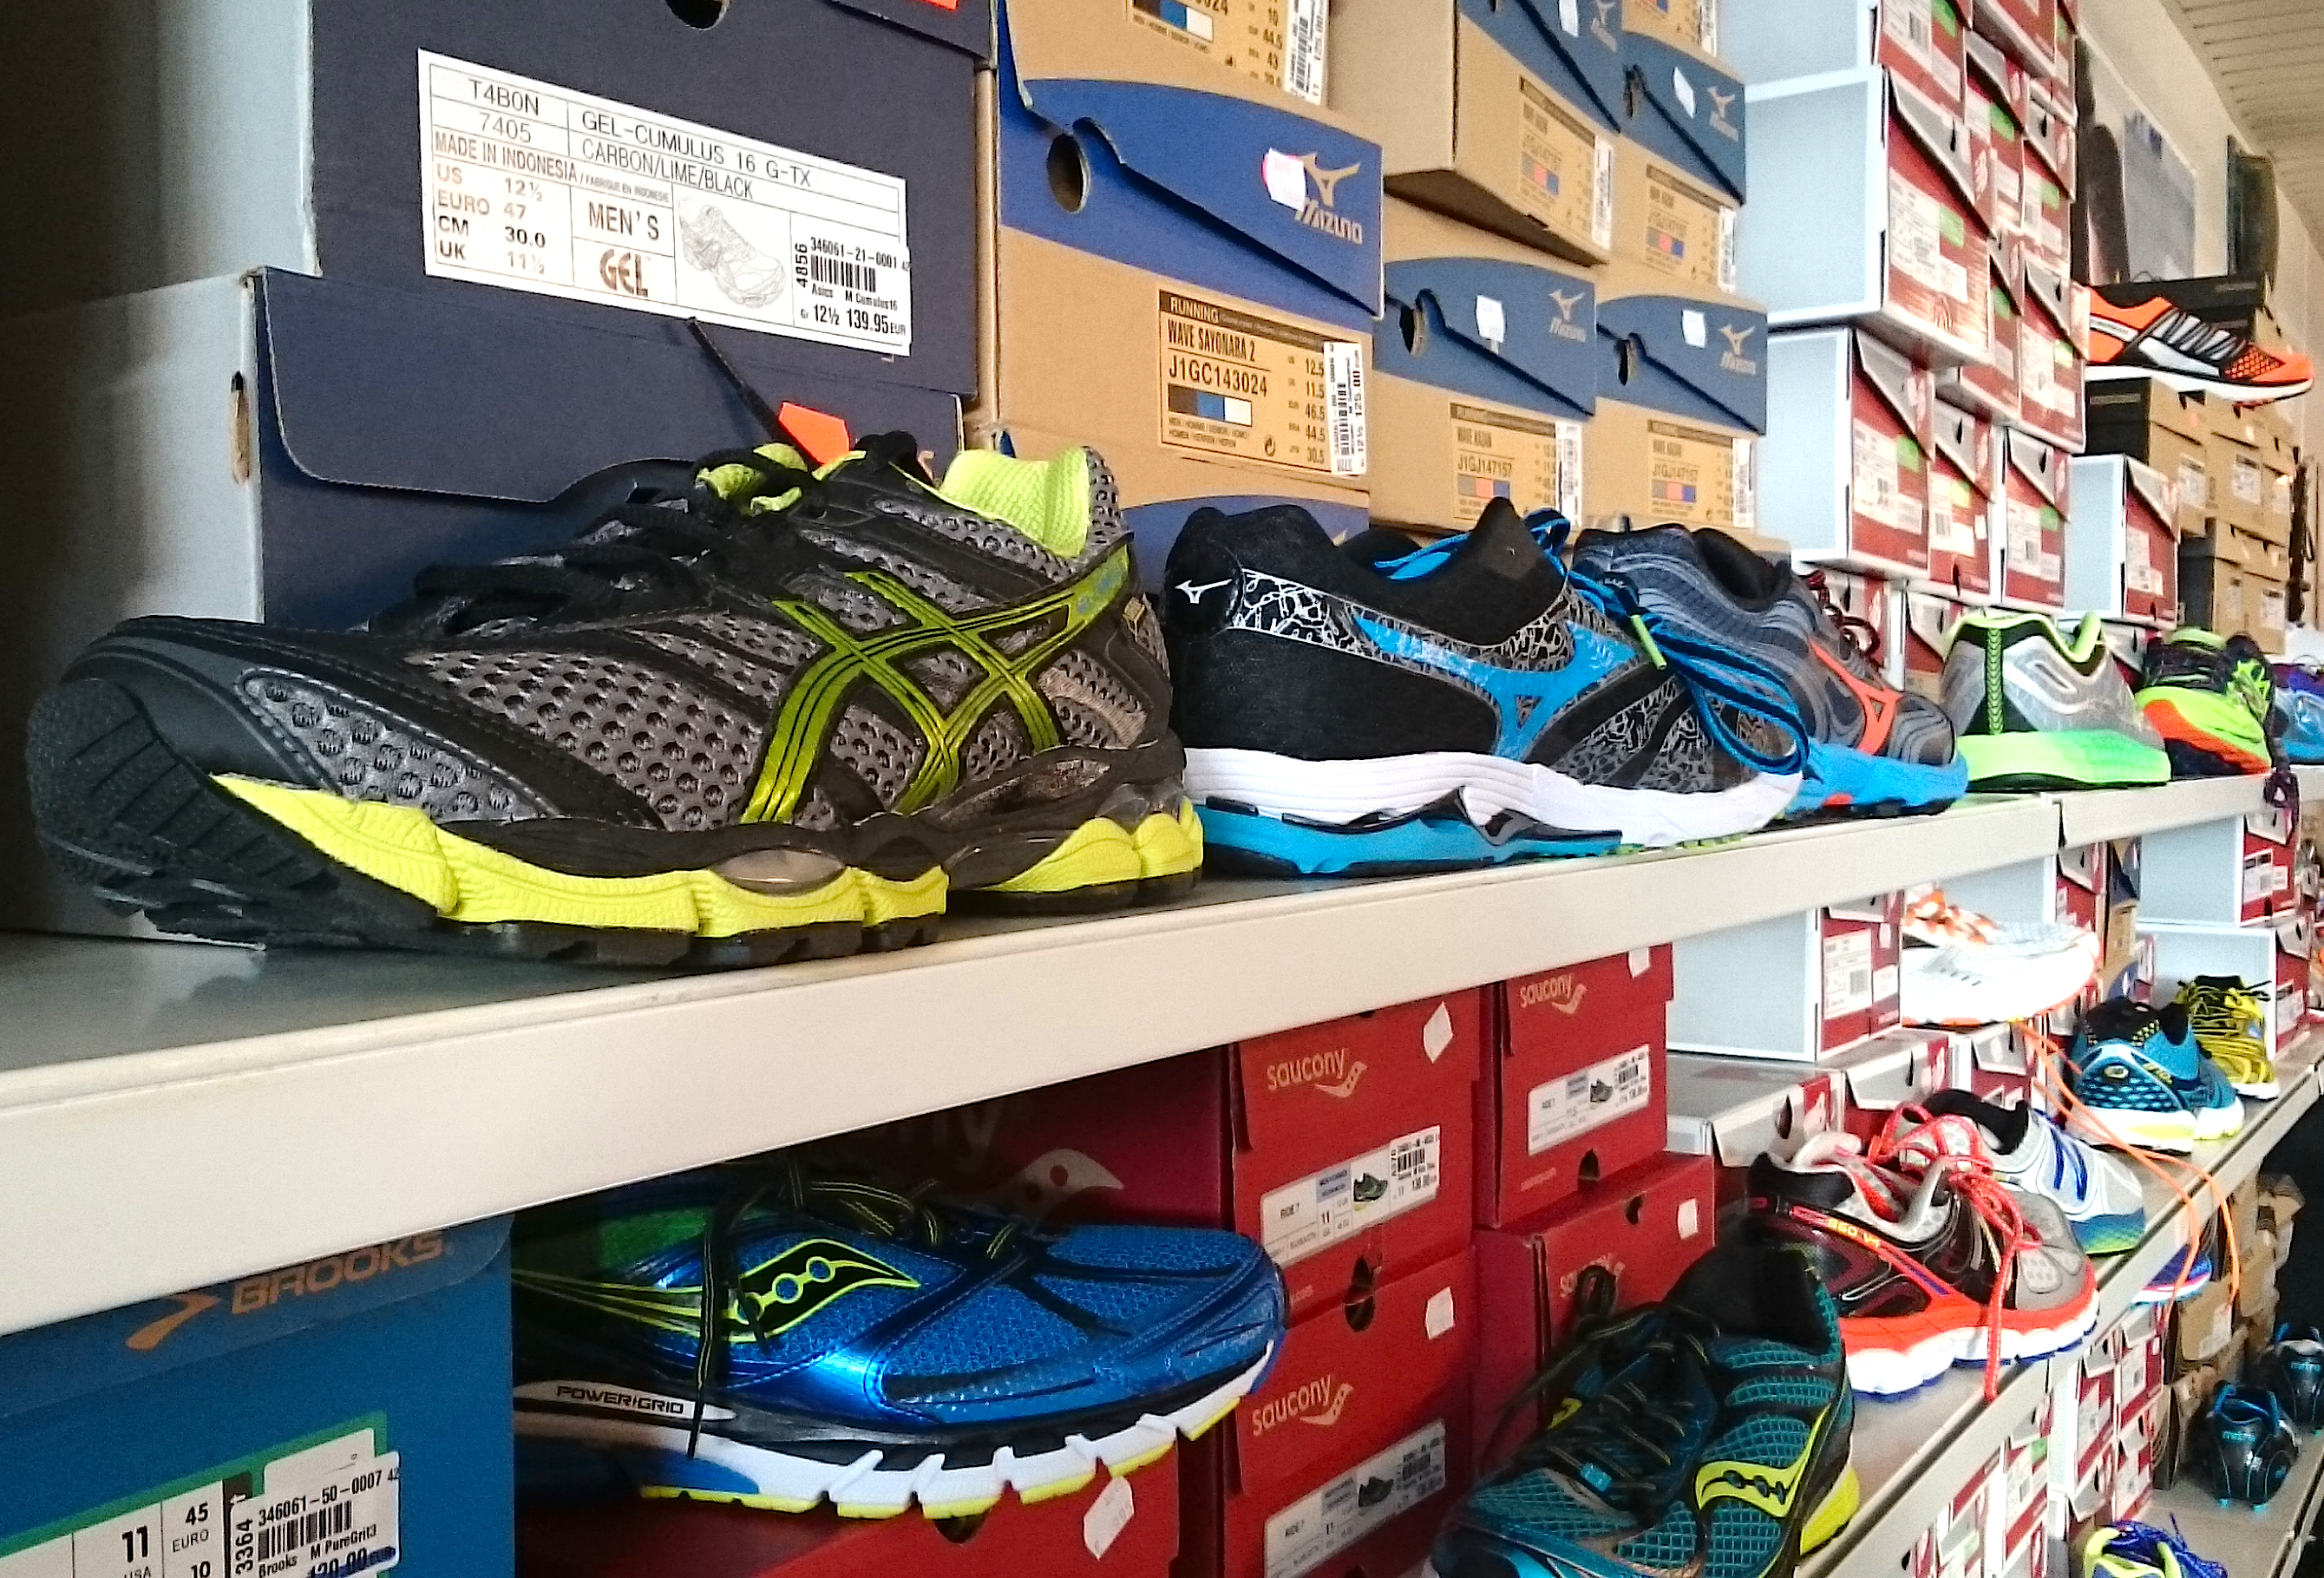 carboo-shop-de - sport outlet - asics laufschuhe - http://www.carboo-shop.de/index.php?route=product/category&path=91